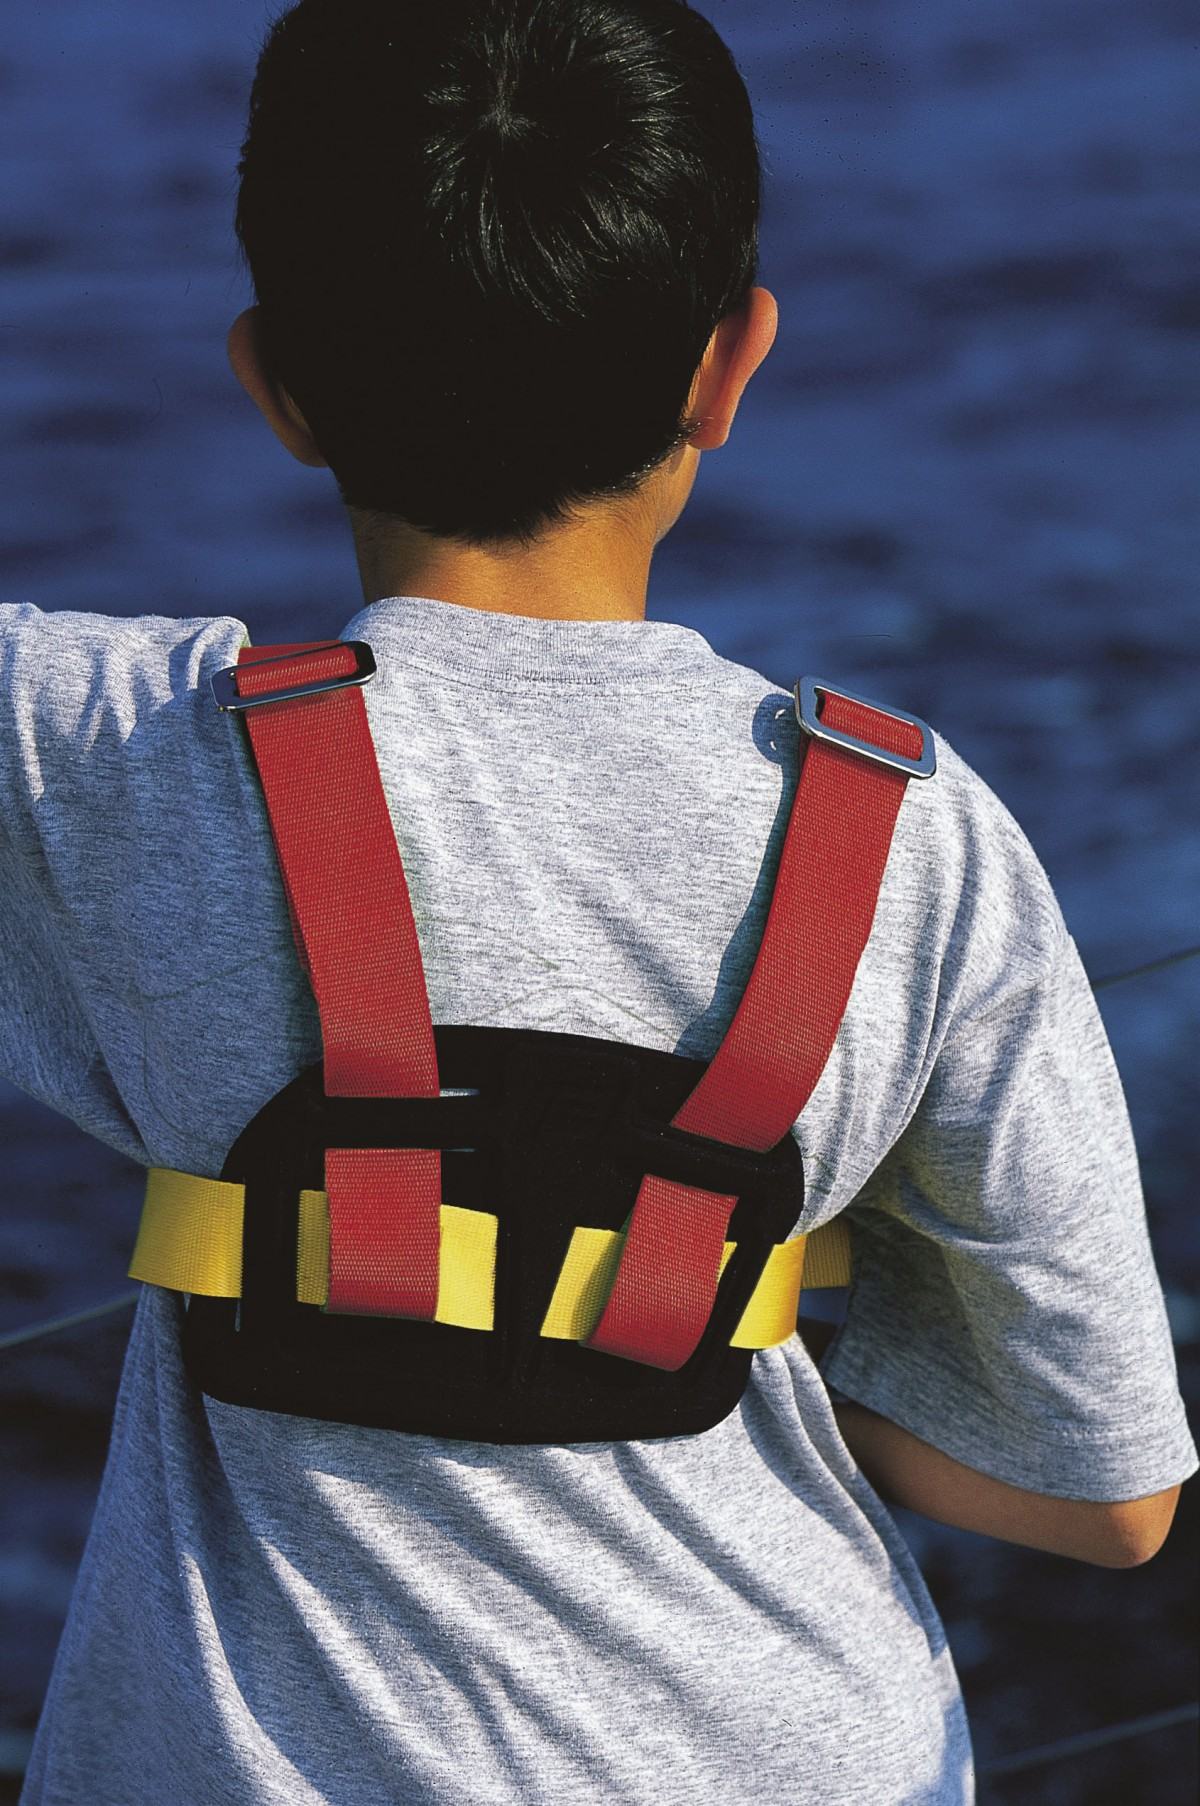 safety harness snap hooks  safety  get free image about